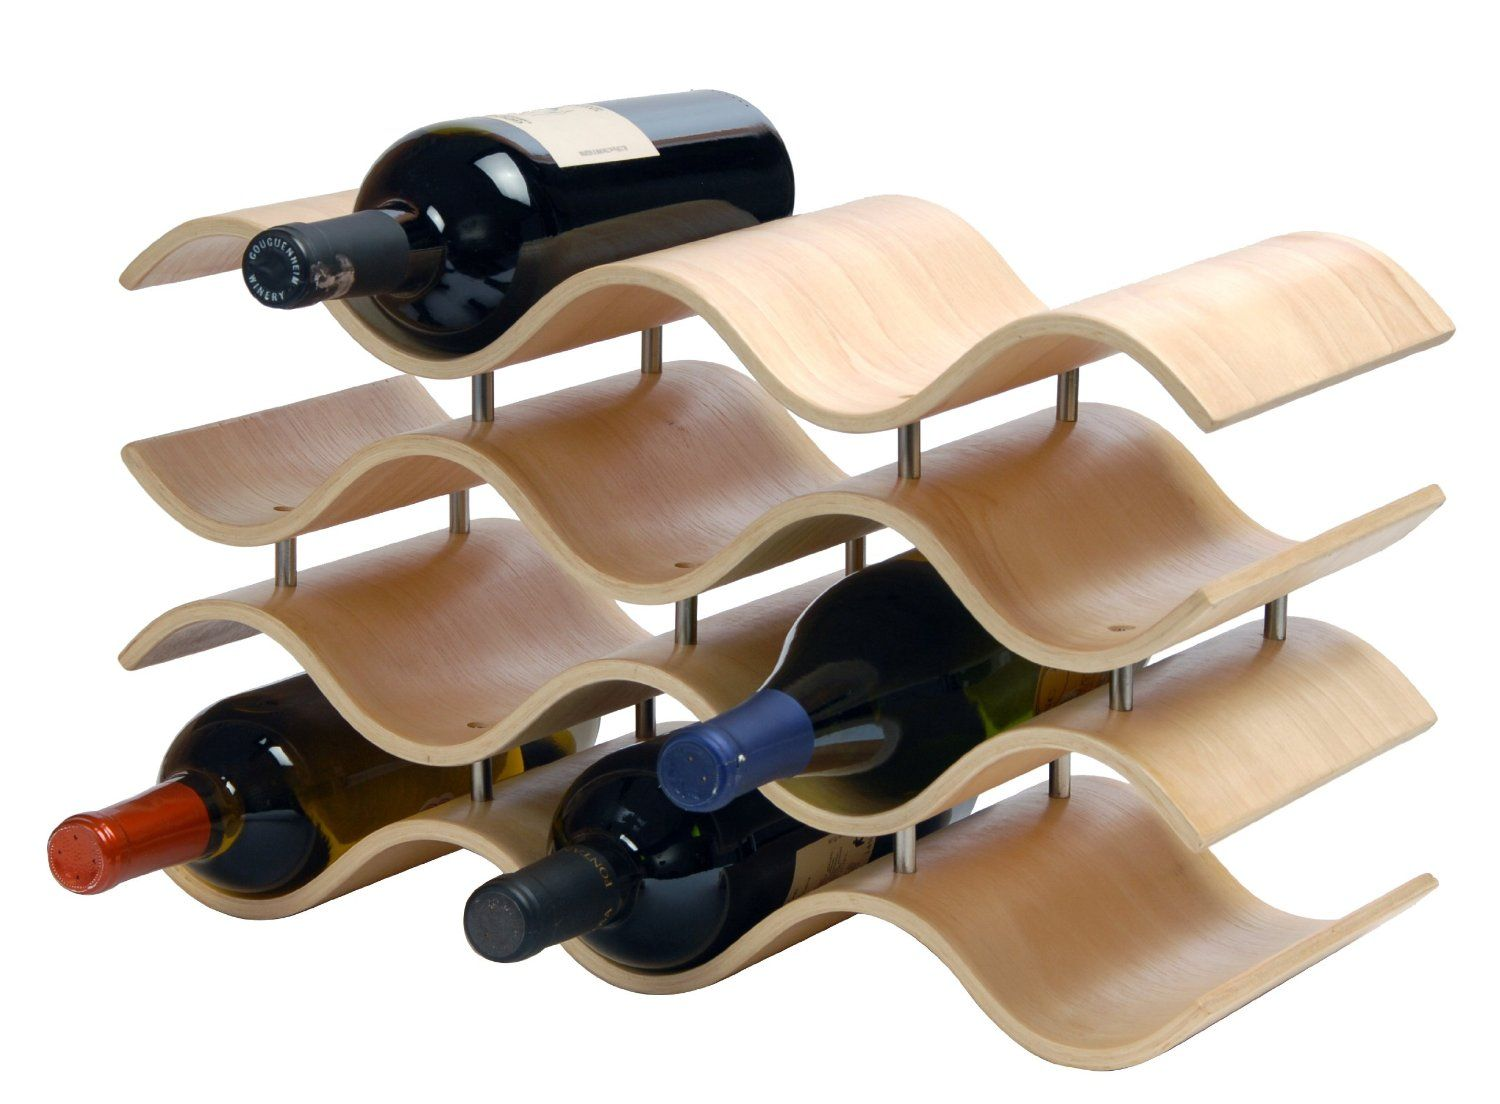 Free standing wine racks kitchen and dining lifestyle for Other uses for wine racks in kitchen